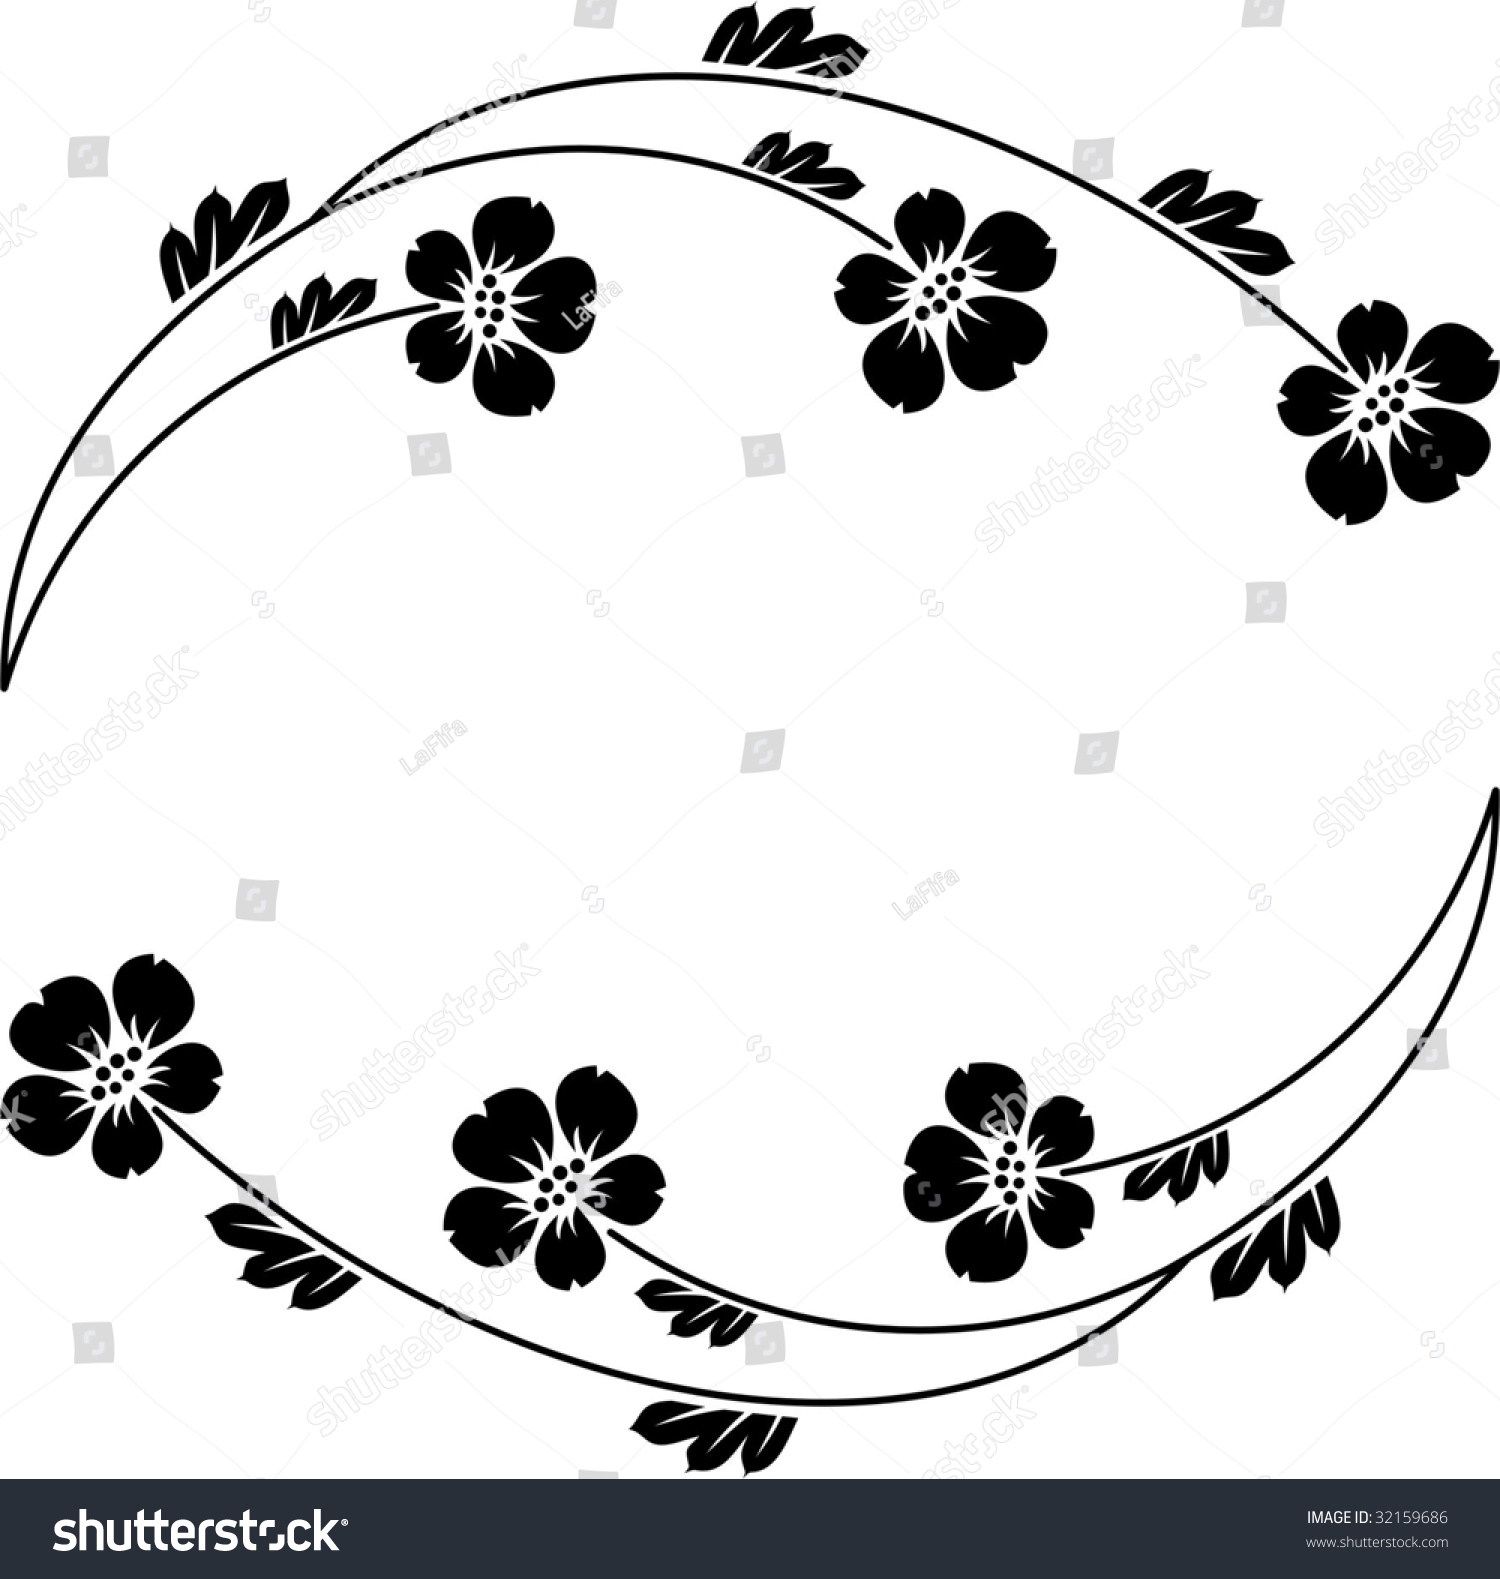 Flowers Silhouette Stock Vector Illustration Shutterstock